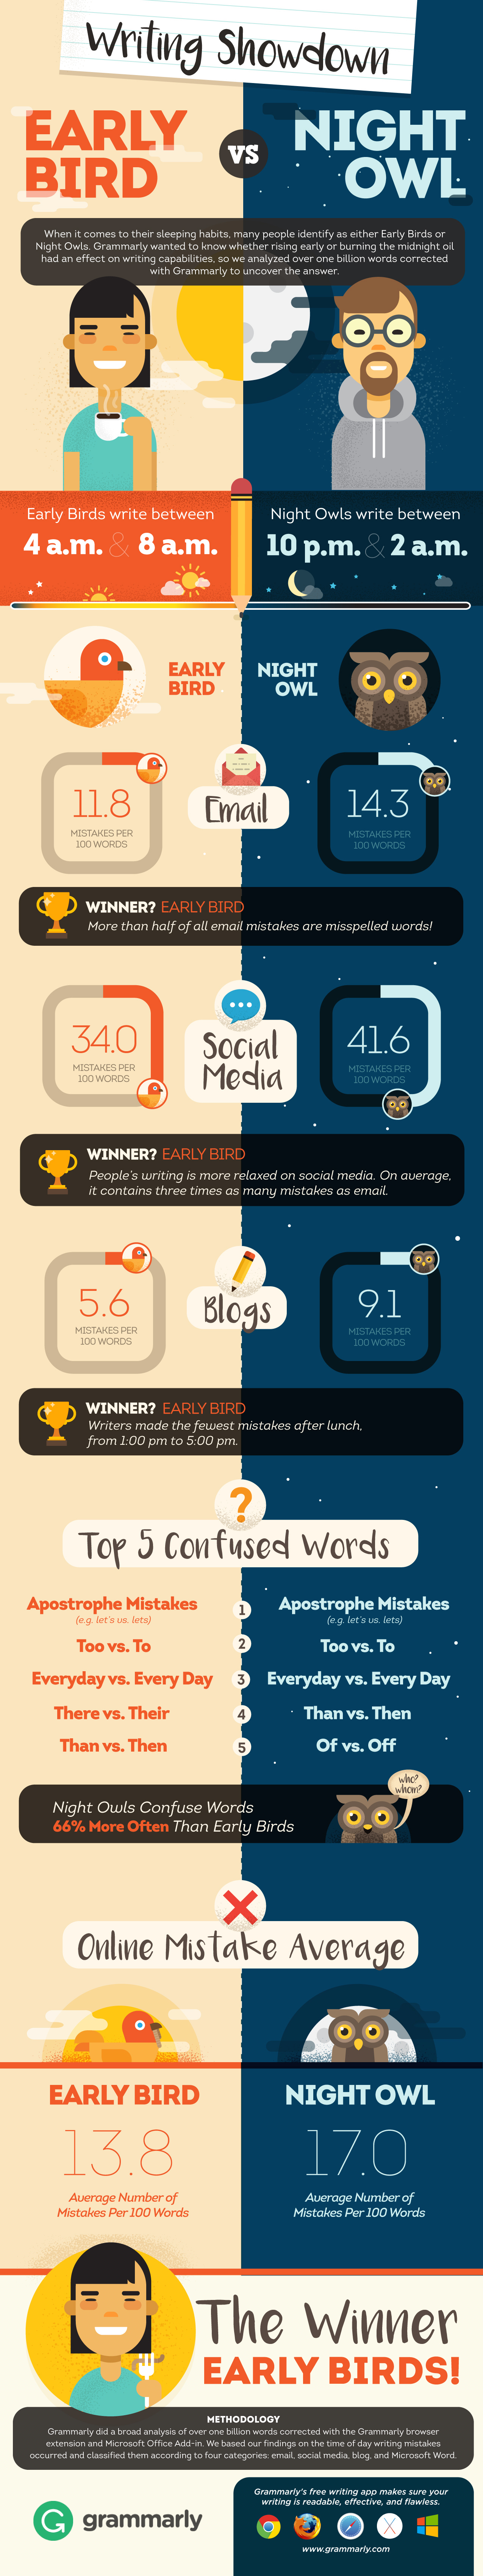 Early Bird vs. Night Owl Infographic